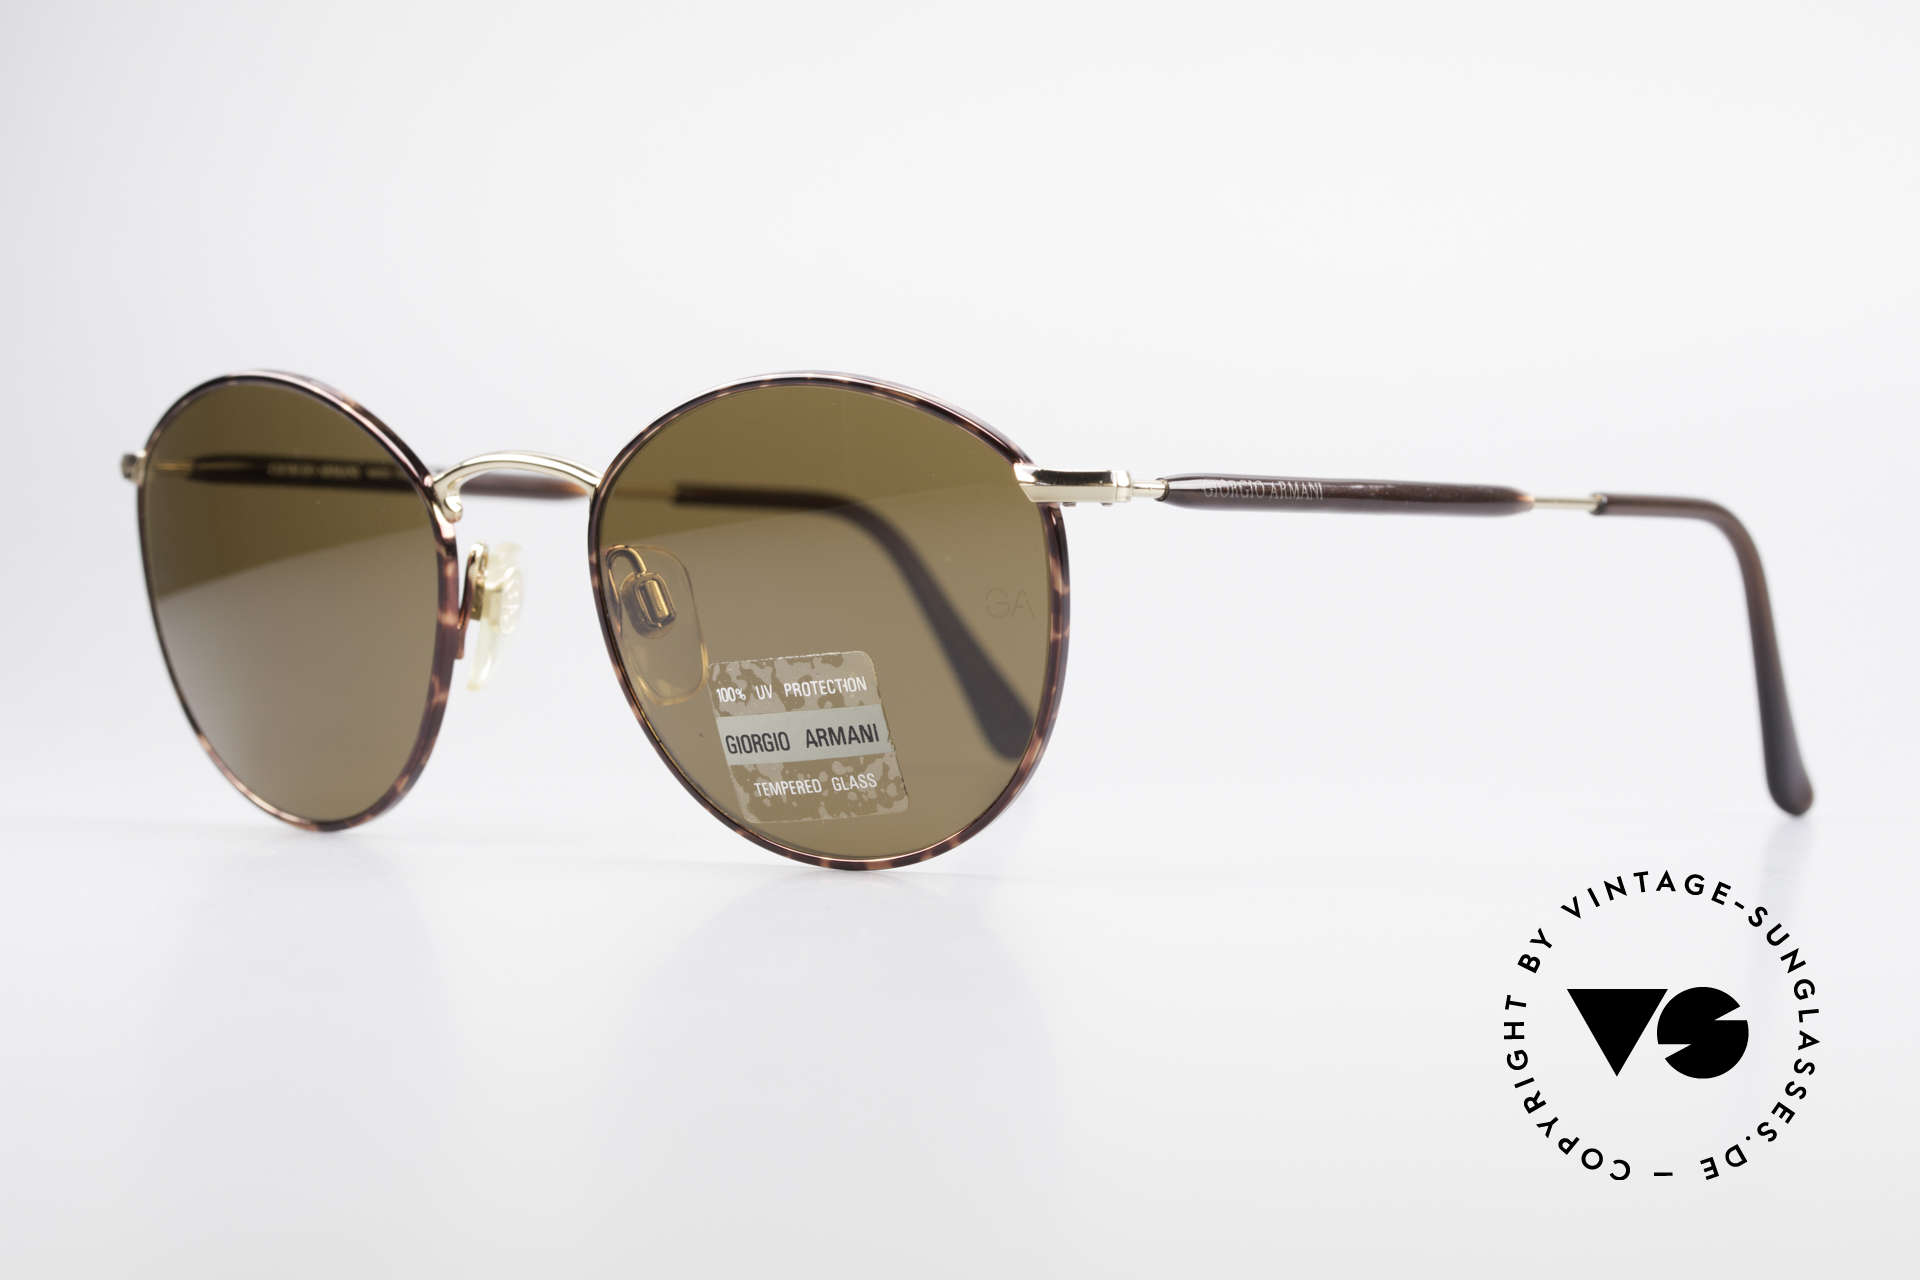 Giorgio Armani 627 Vintage Panto Sunglasses, premium craftsmanship and timeless brown coloring, Made for Men and Women